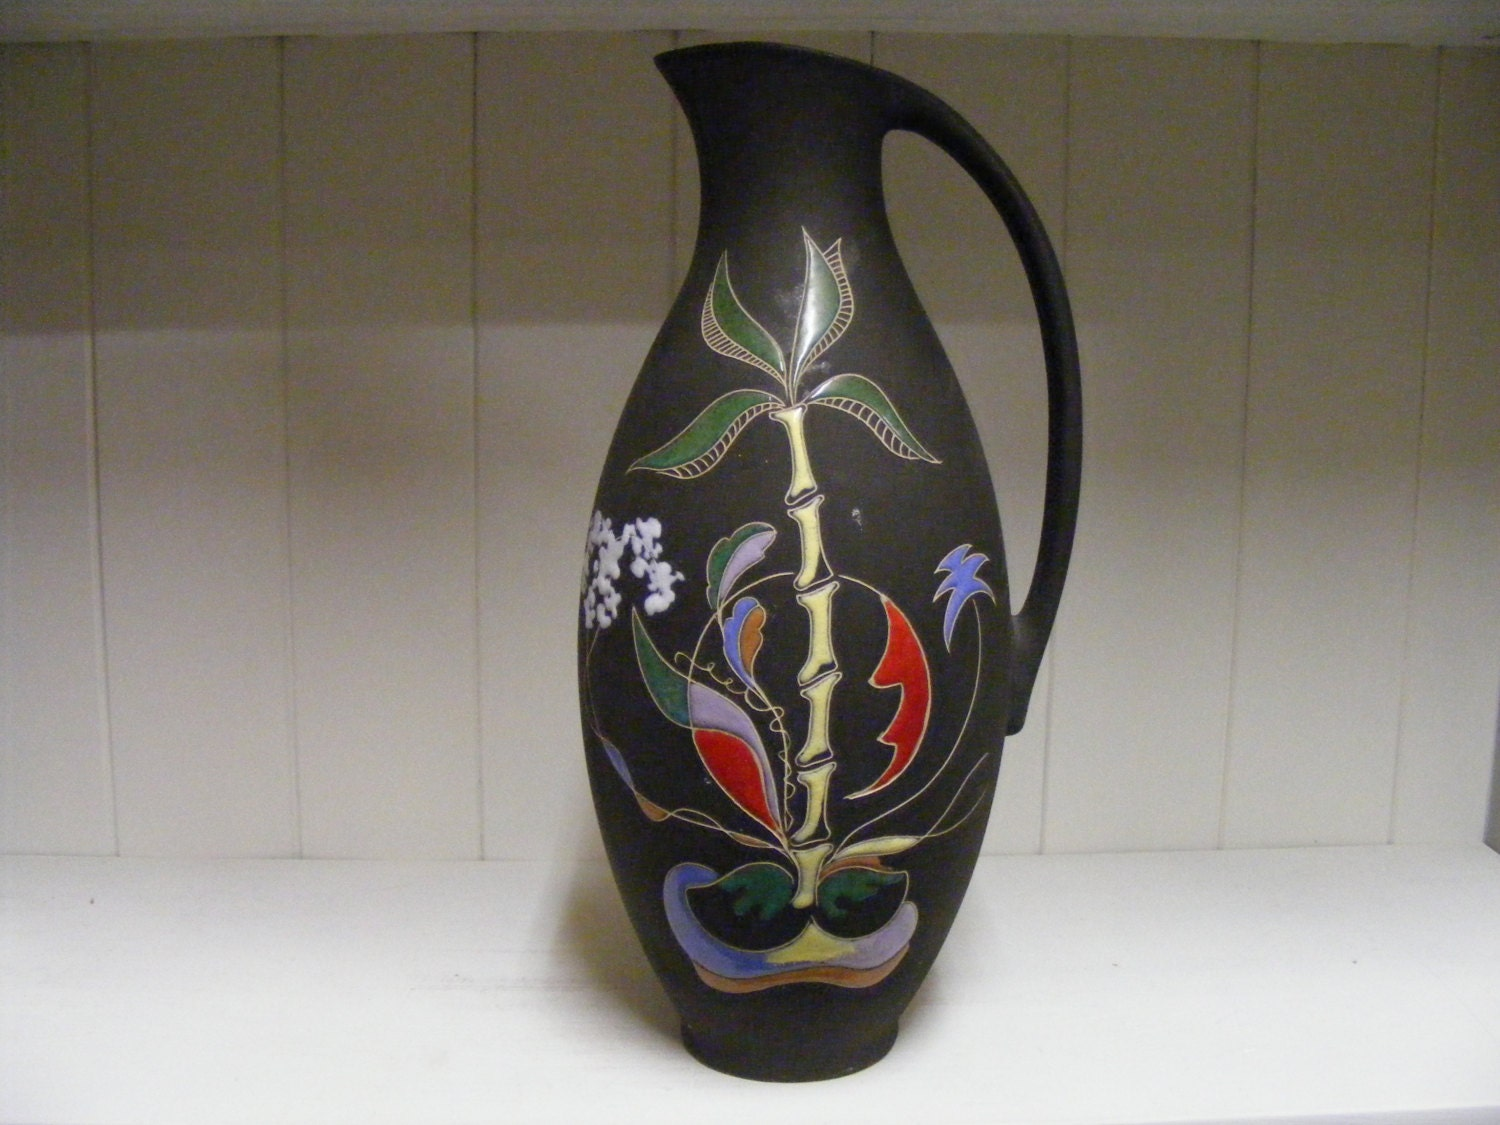 Keto keramik vase with bali decor for Bali decoration accessories